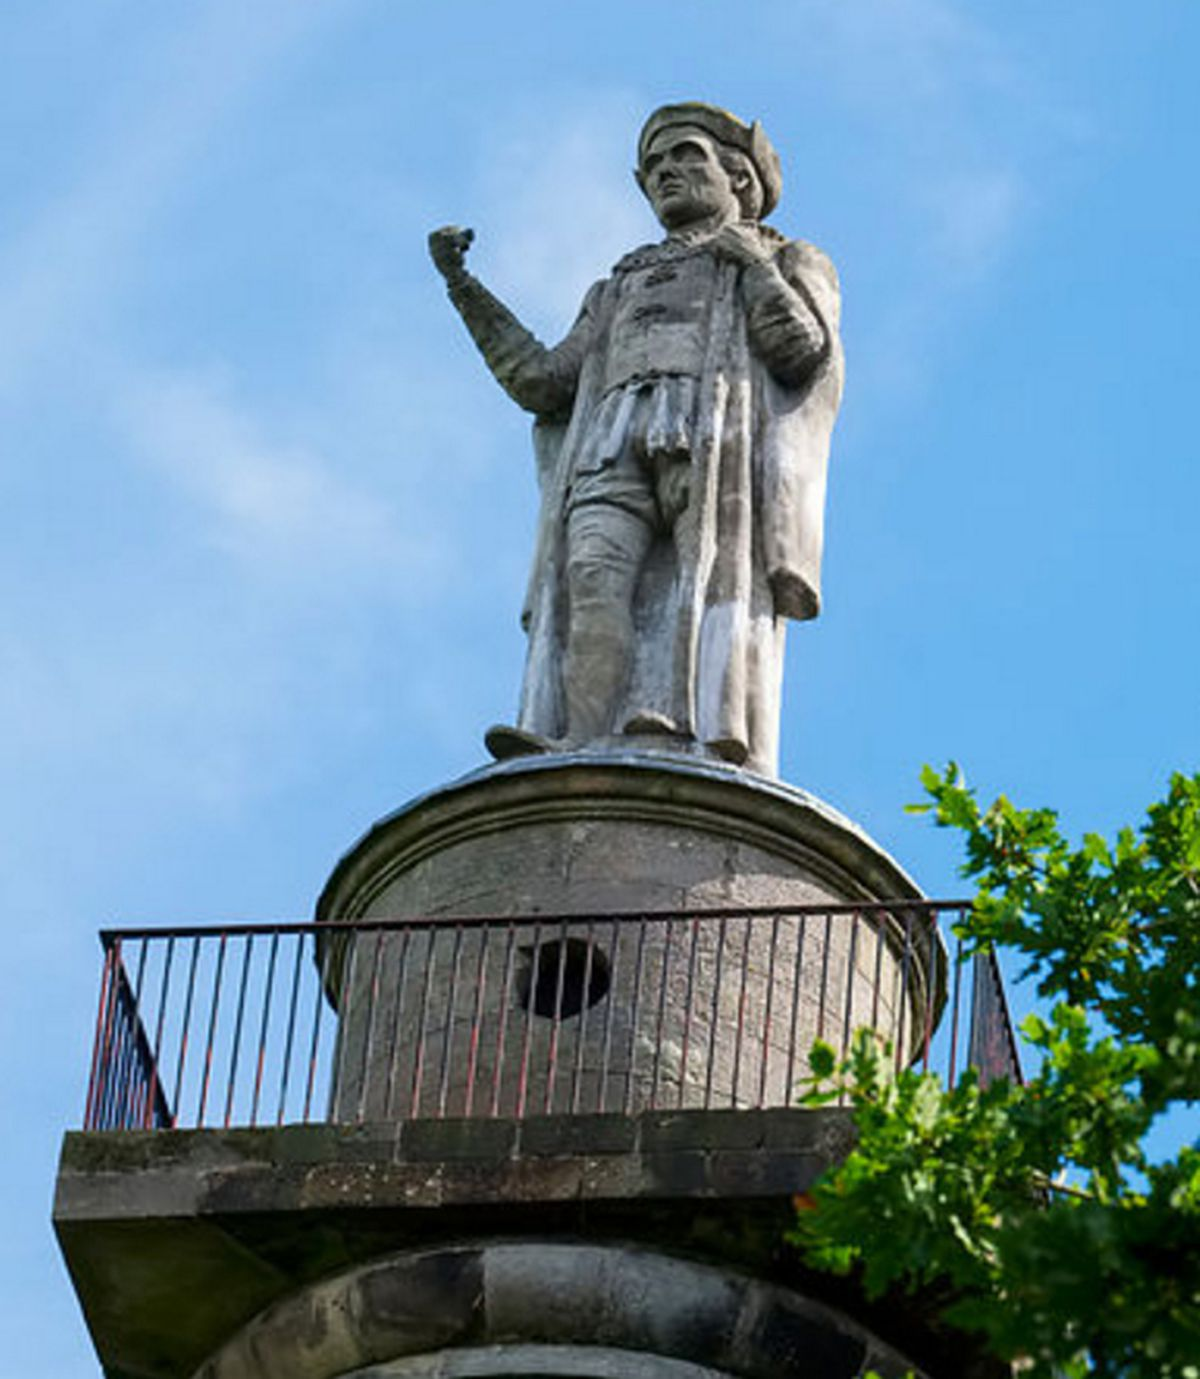 The statue of Rowland Hill, the first Protestant Lord Mayor of London, on top of the Monument at Hawkstone Park.